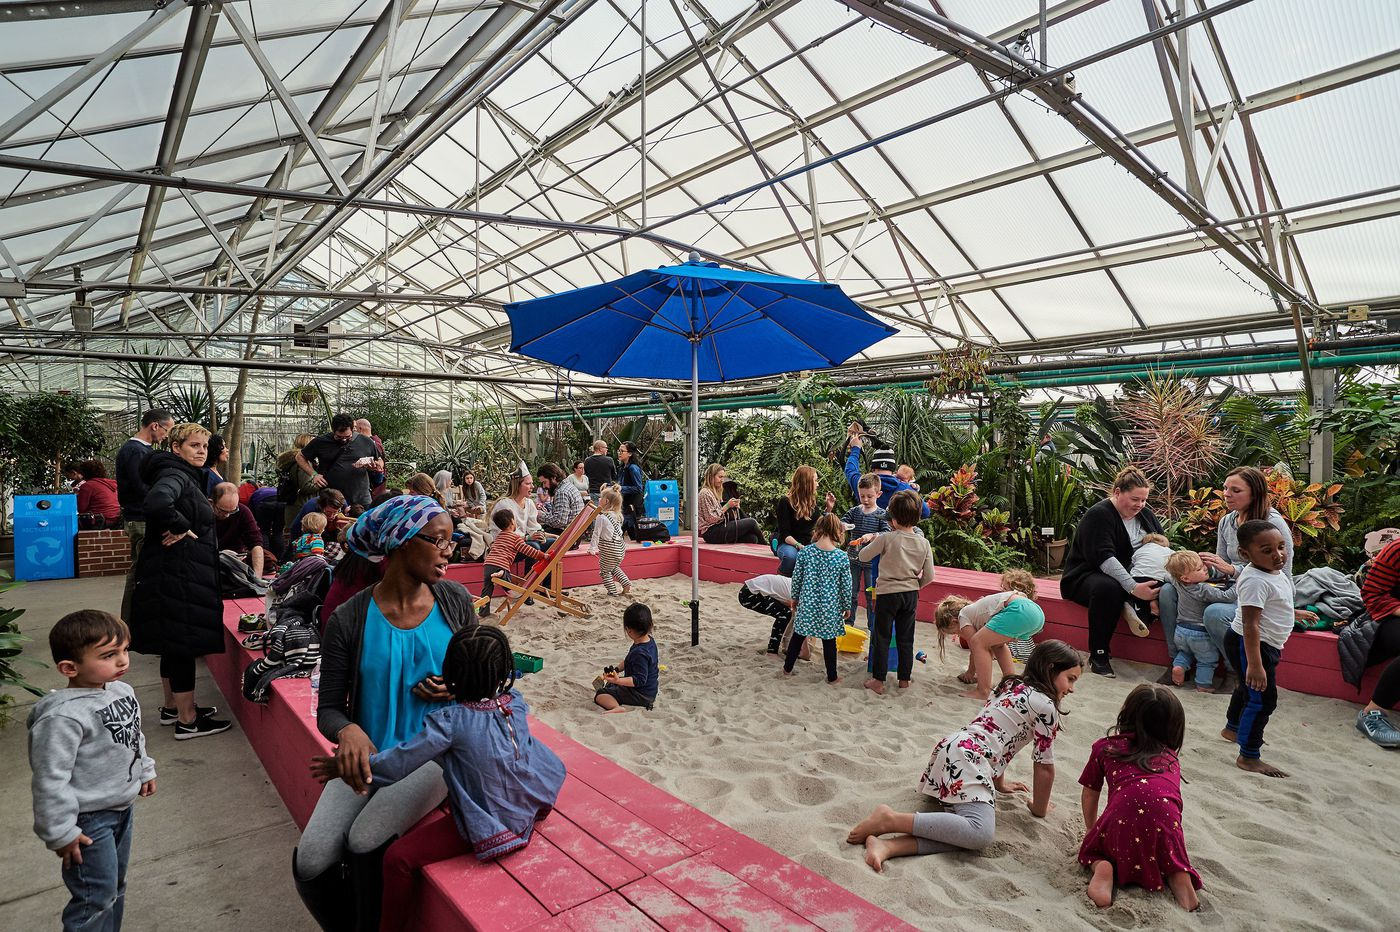 What to do in Philly this week (Jan. 31-Feb. 6) Philly Theatre Week, chill out in a greenhouse, puppy yoga, Friday Remix, and more